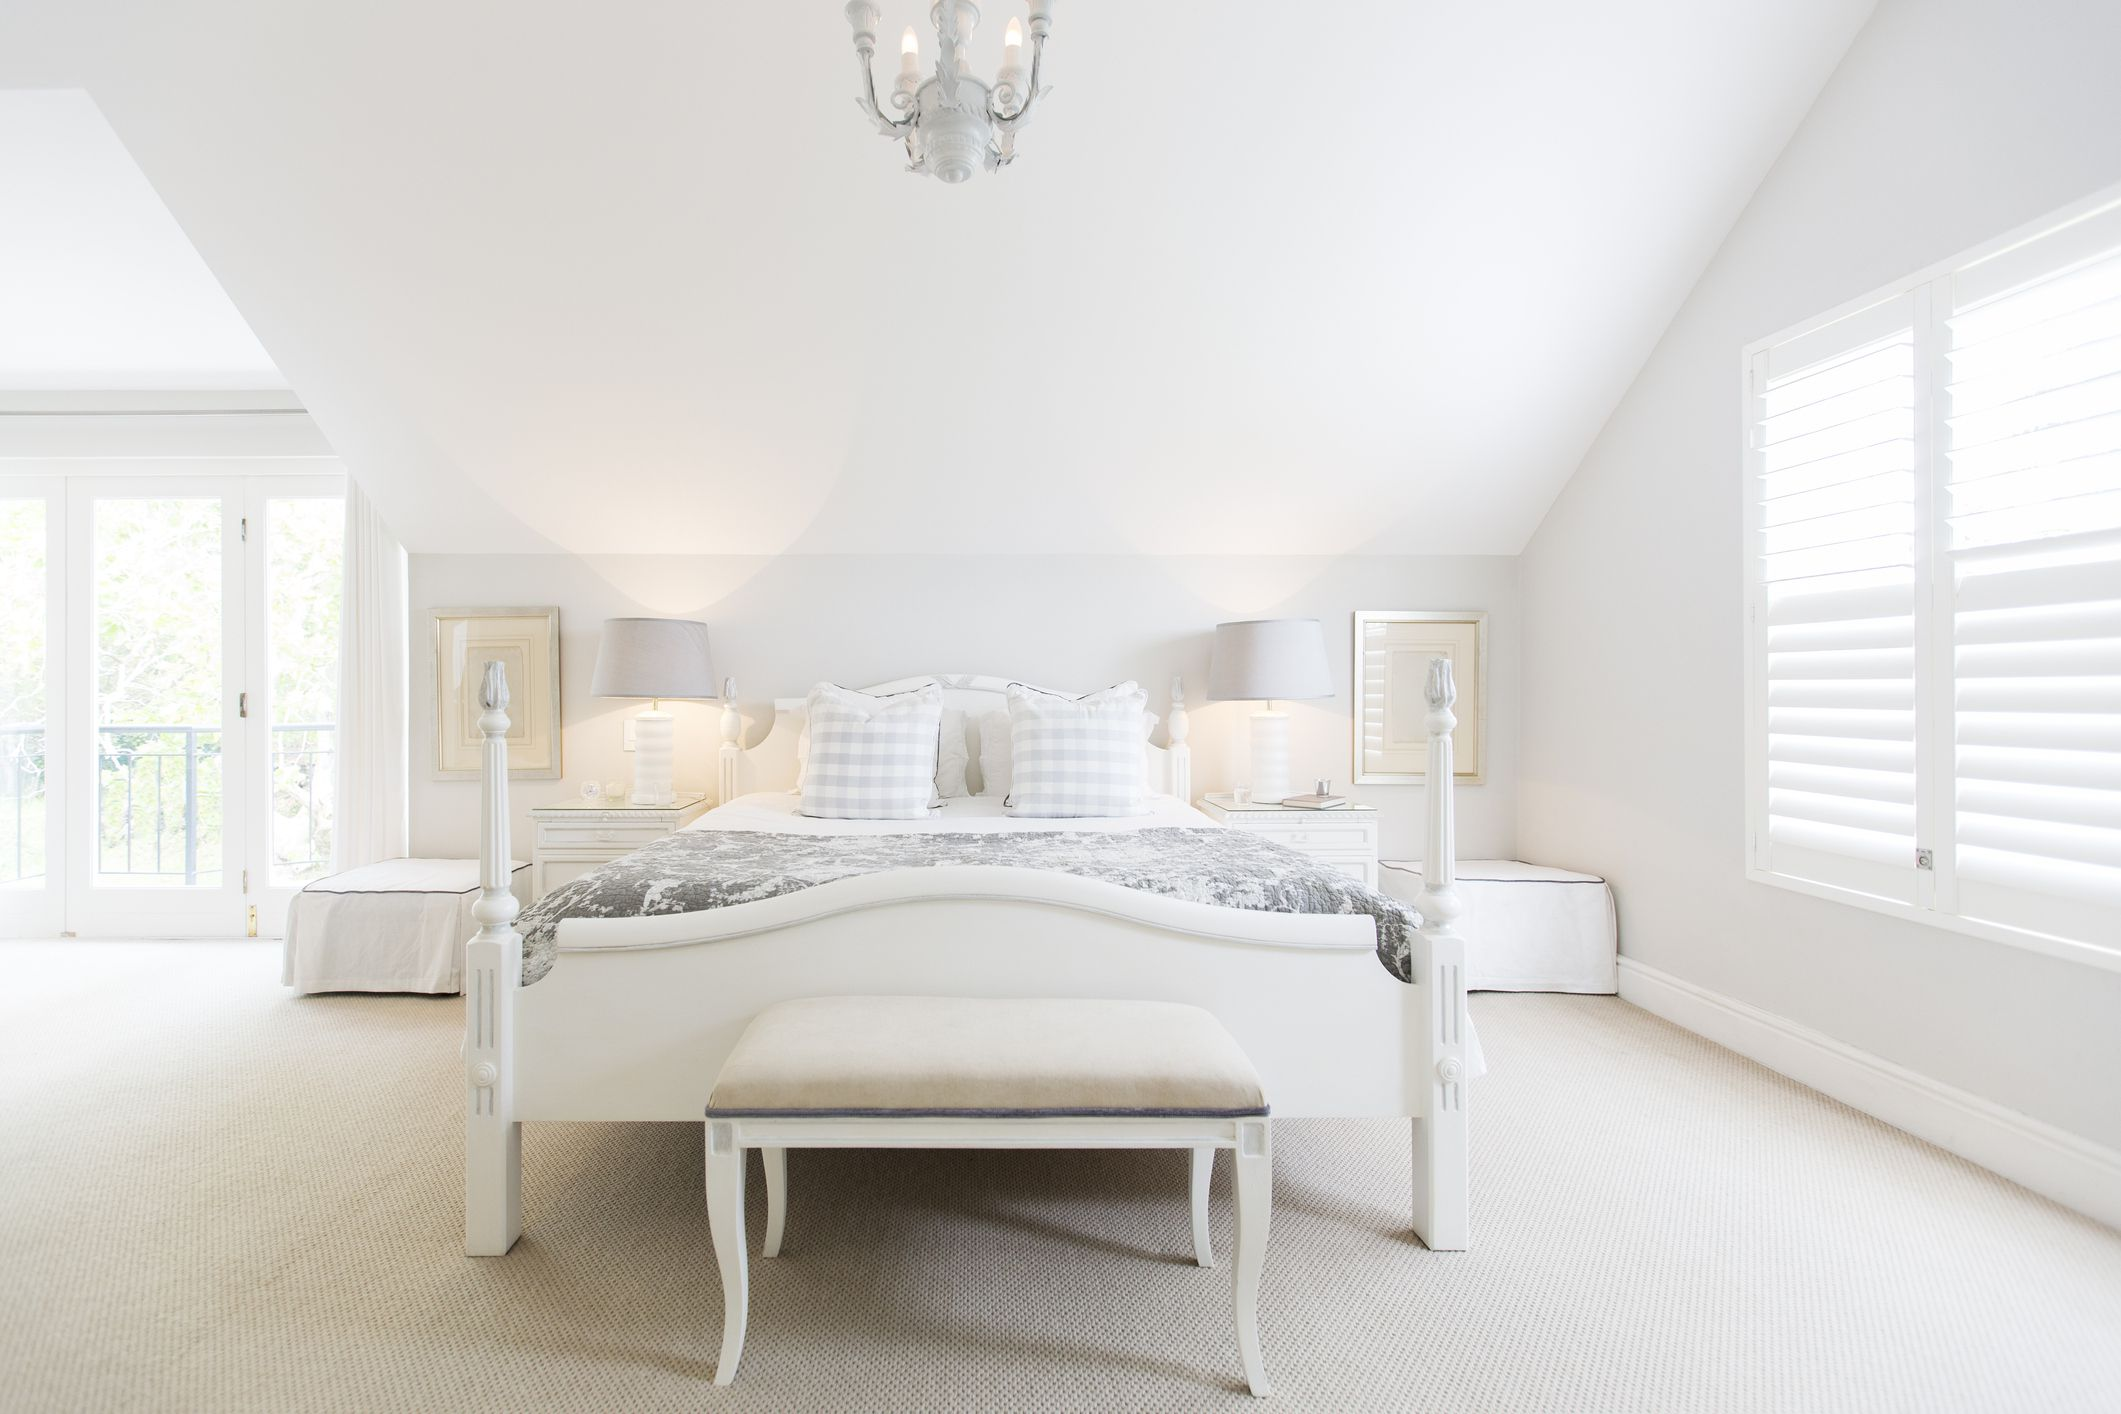 Ways to Use White in a Bedroom. 9 Tips for Styling White Rooms